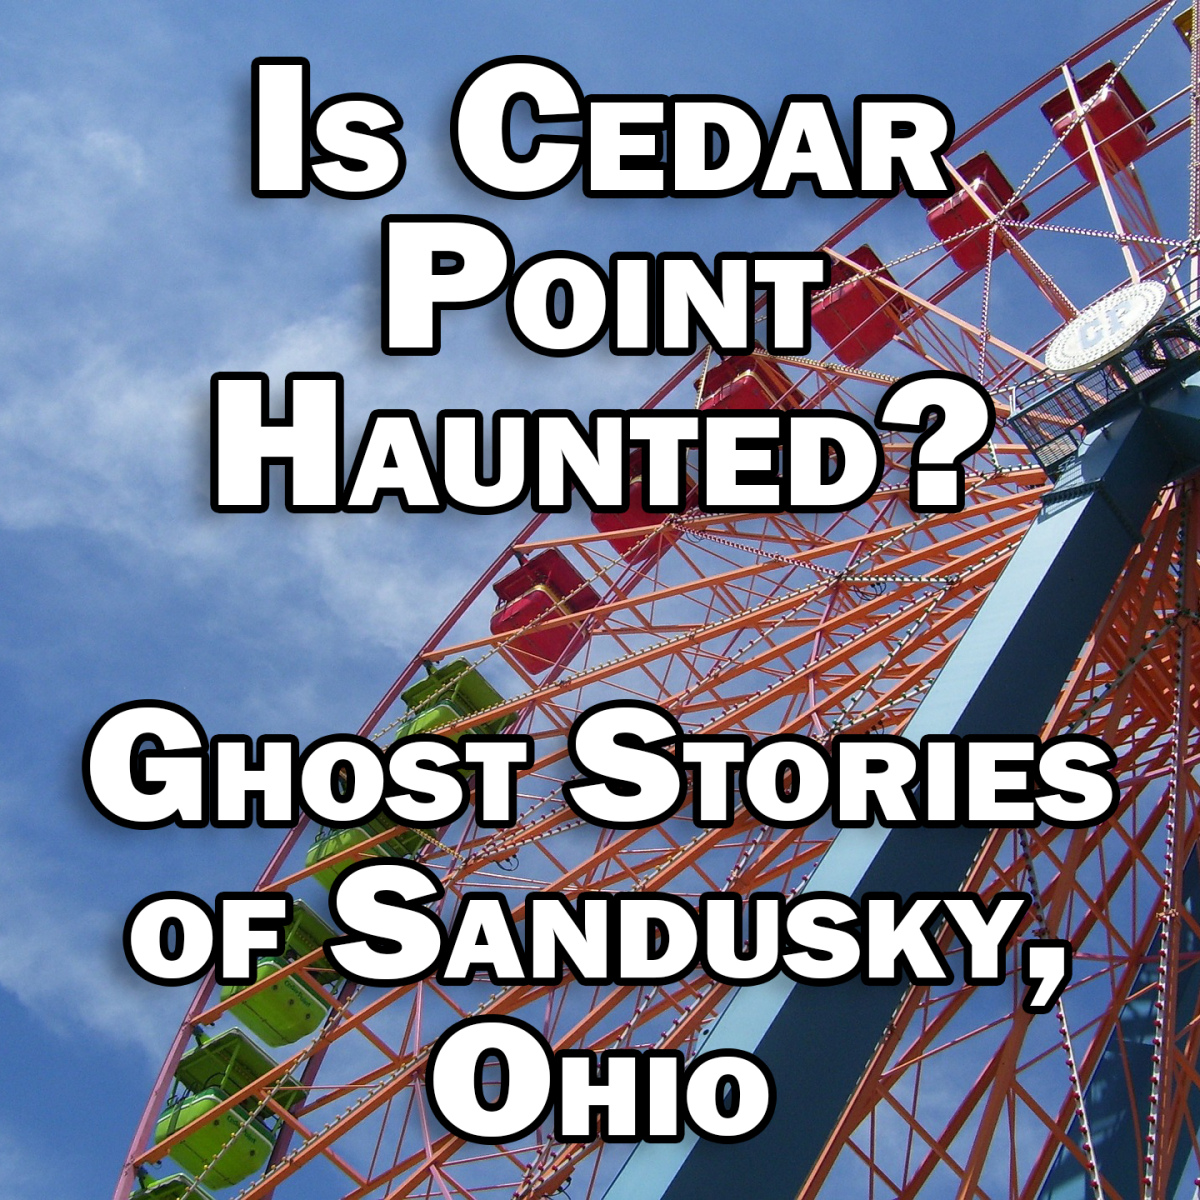 Are the ghost stories about Cedar Point true?